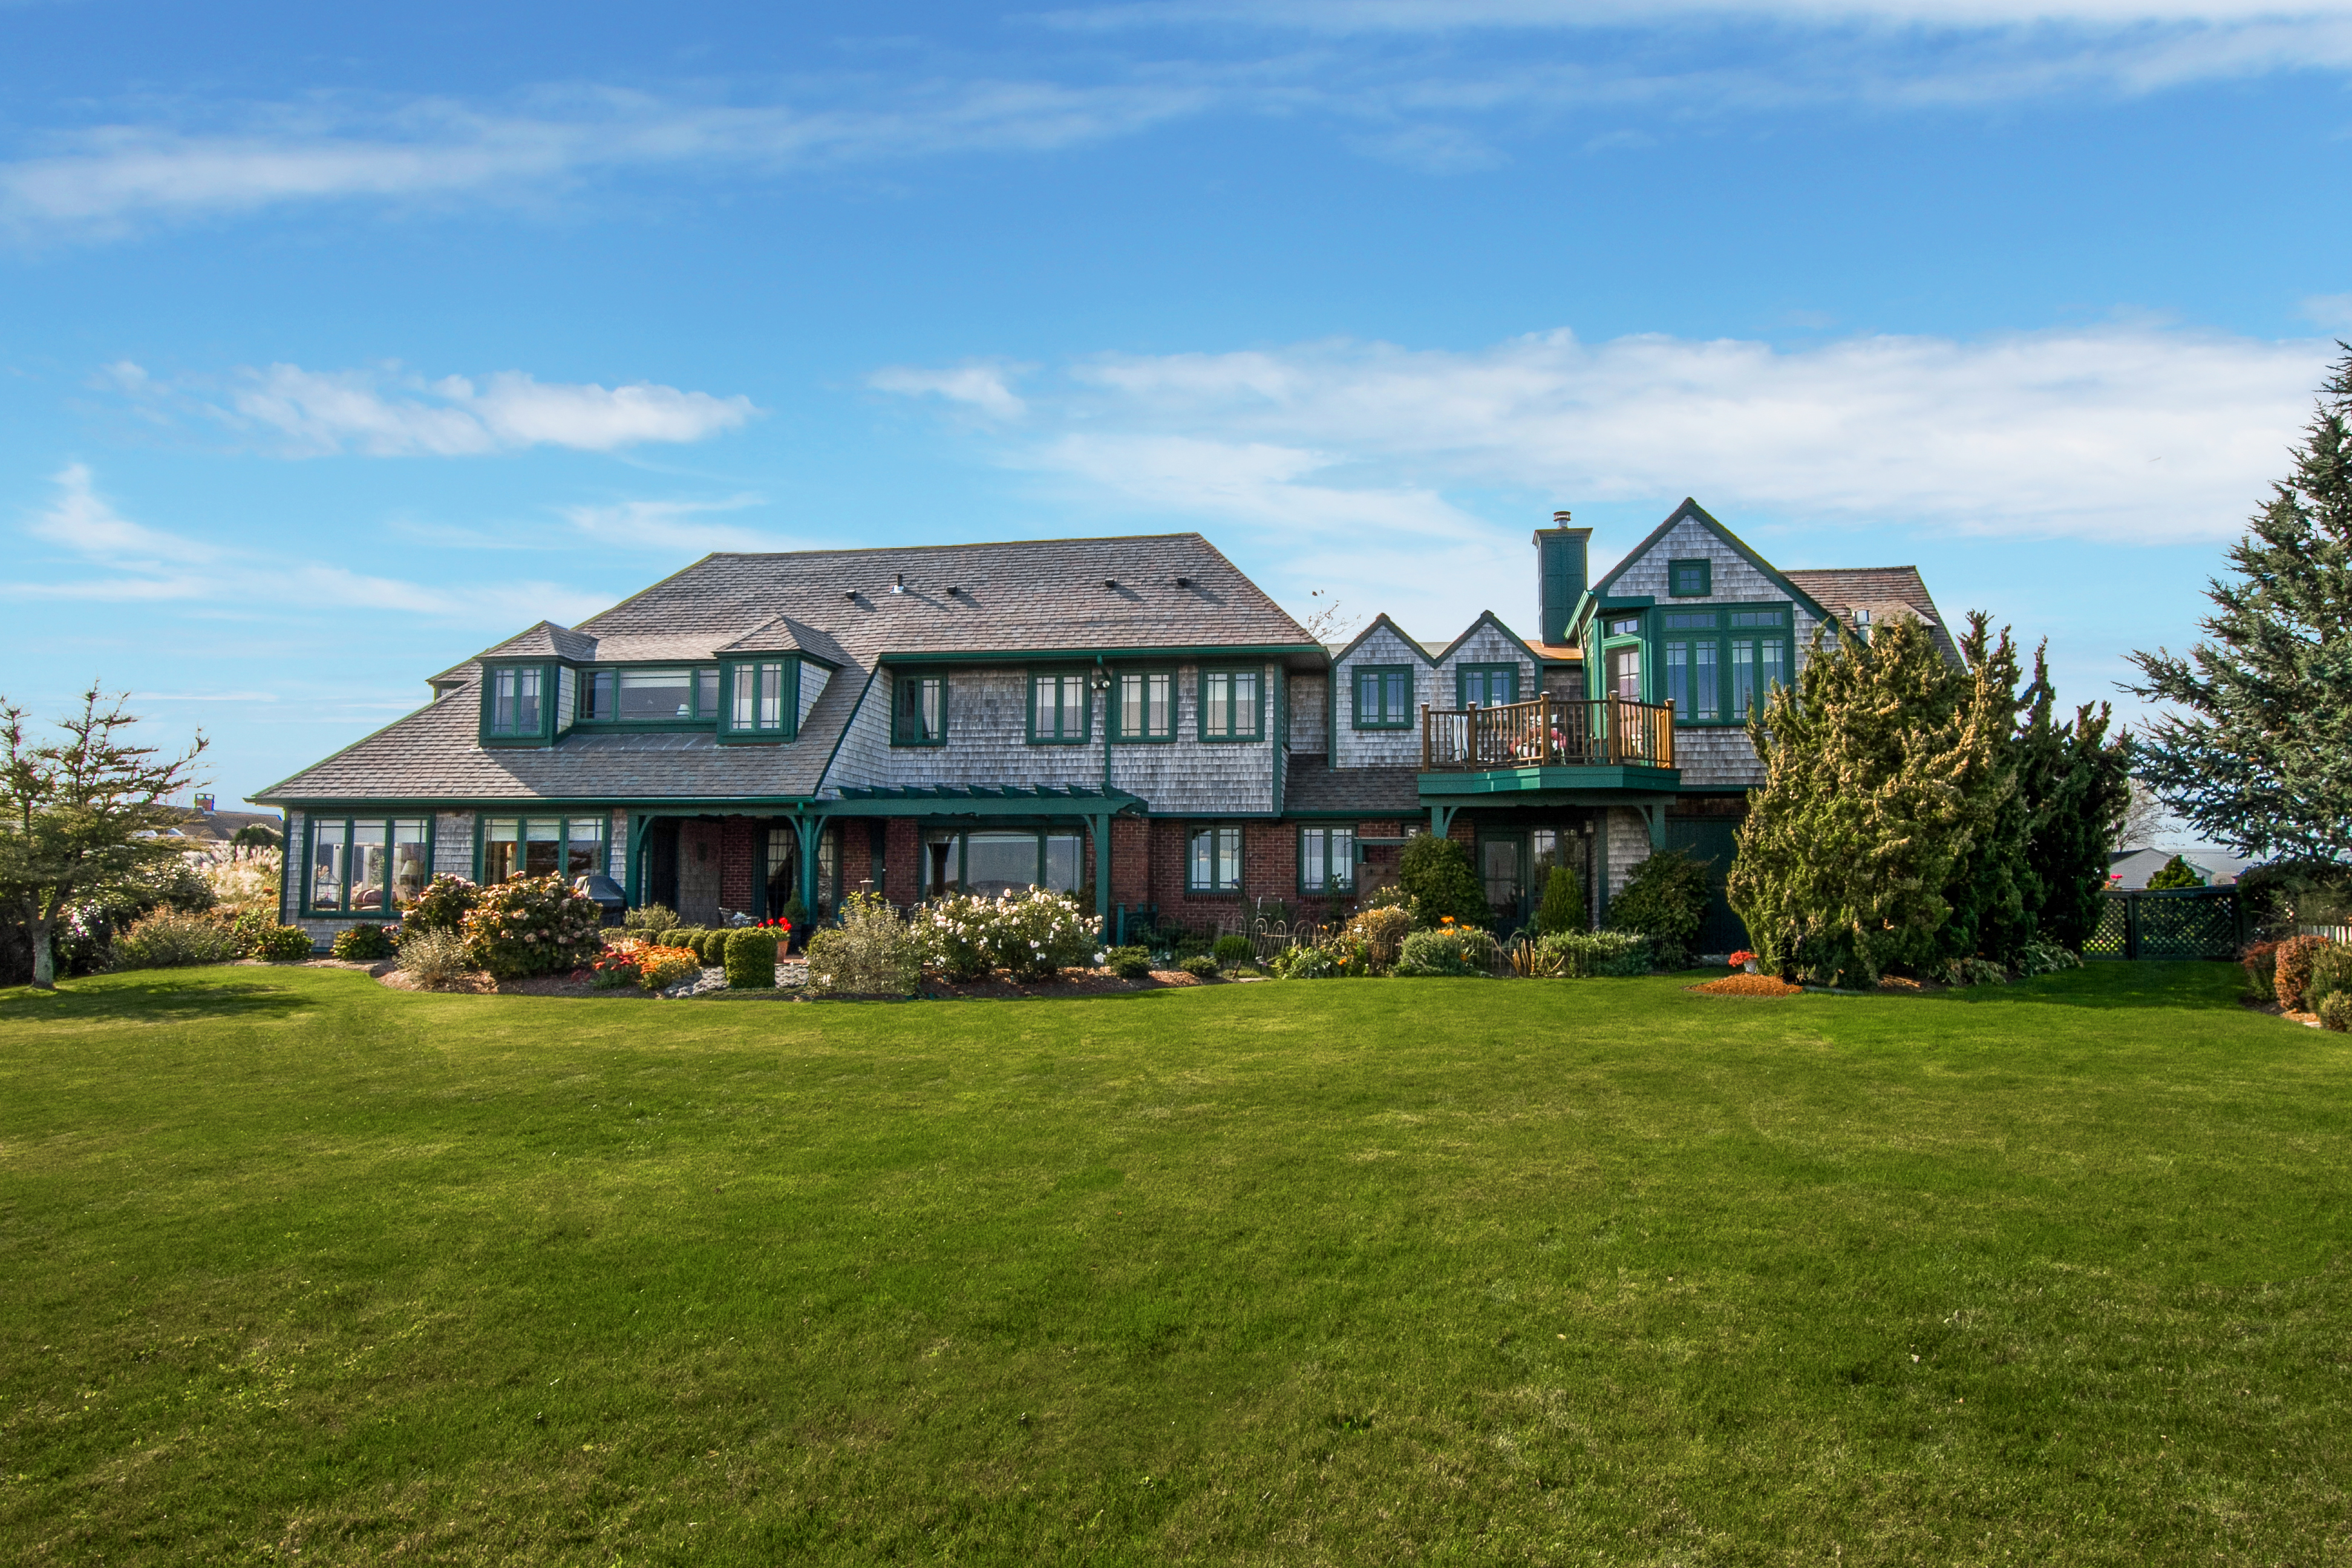 WATERFRONT HOME IN NARRAGANSETT'S  BONNET SHORES SELLS FOR OVER $2M